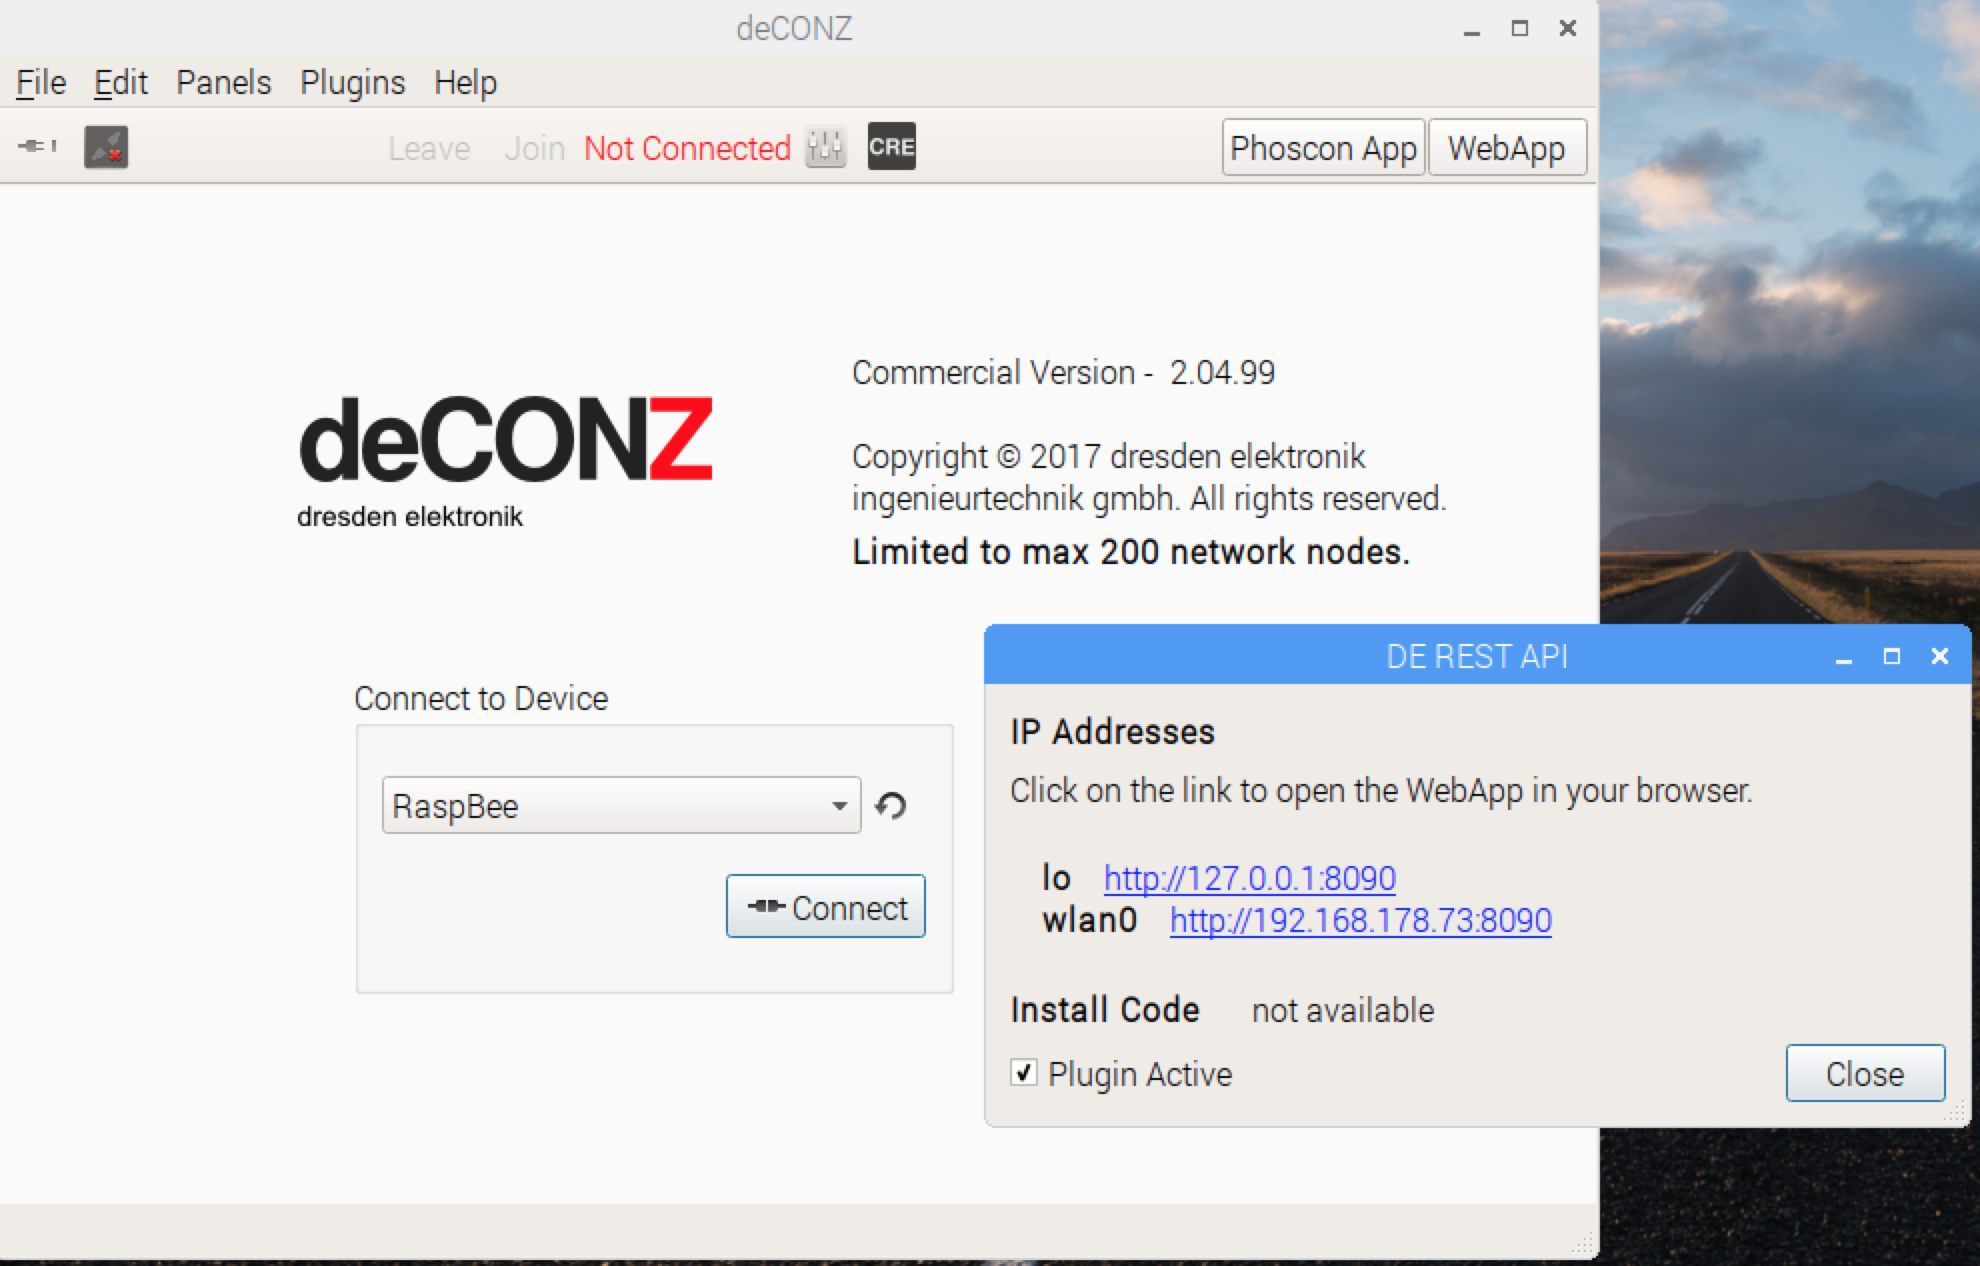 Deconz Homebridge